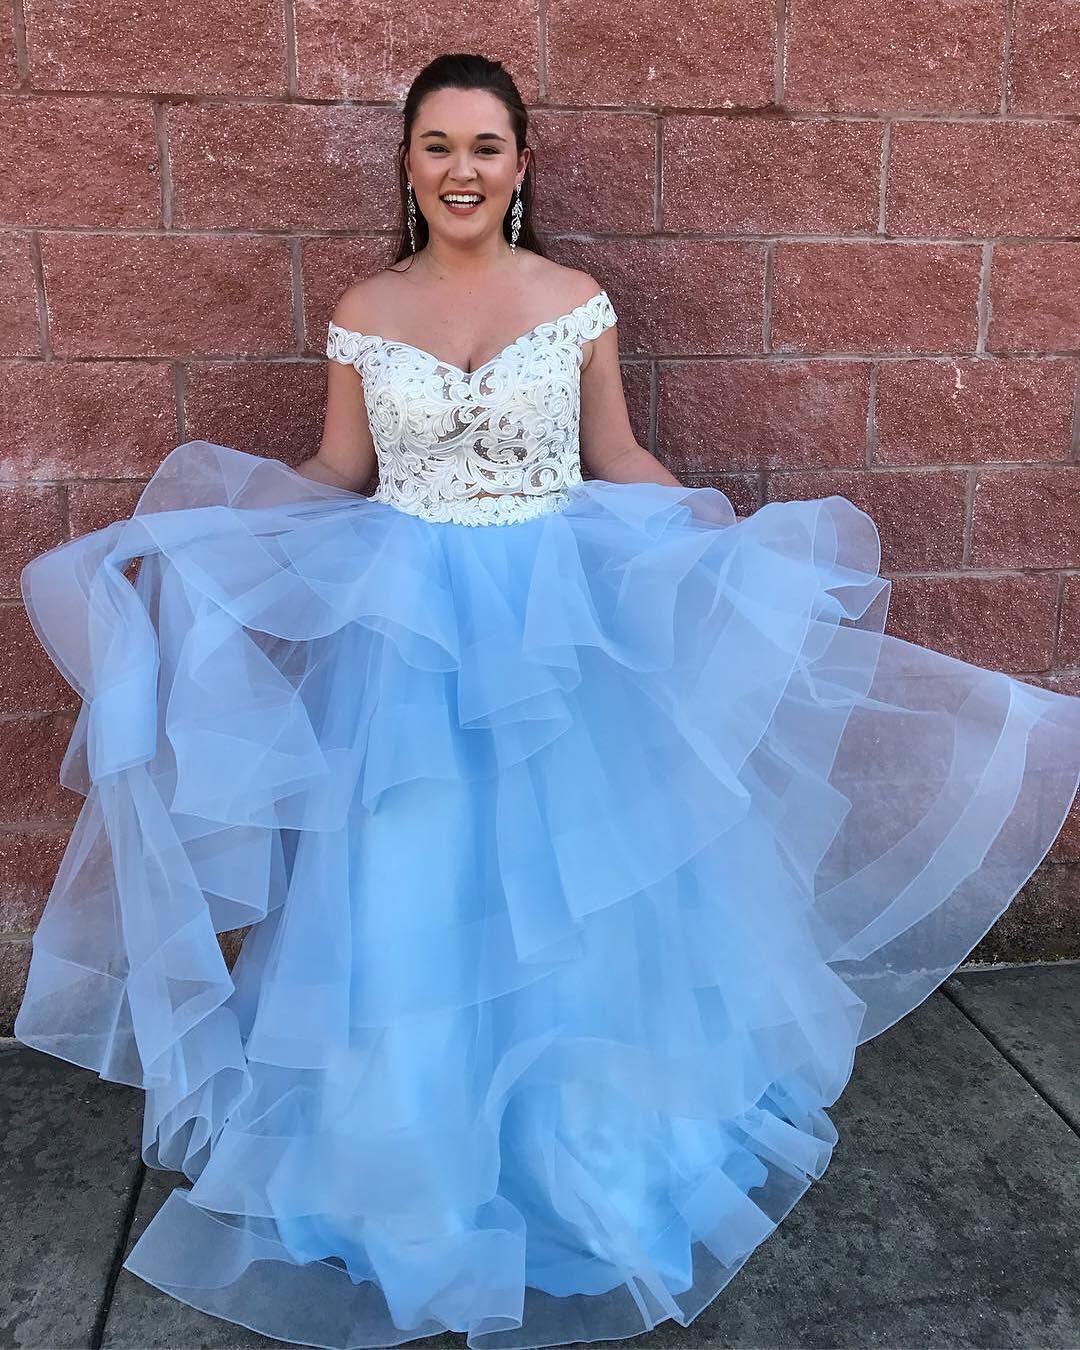 Off shoulder white and blue long prom dress from dreamdressy in